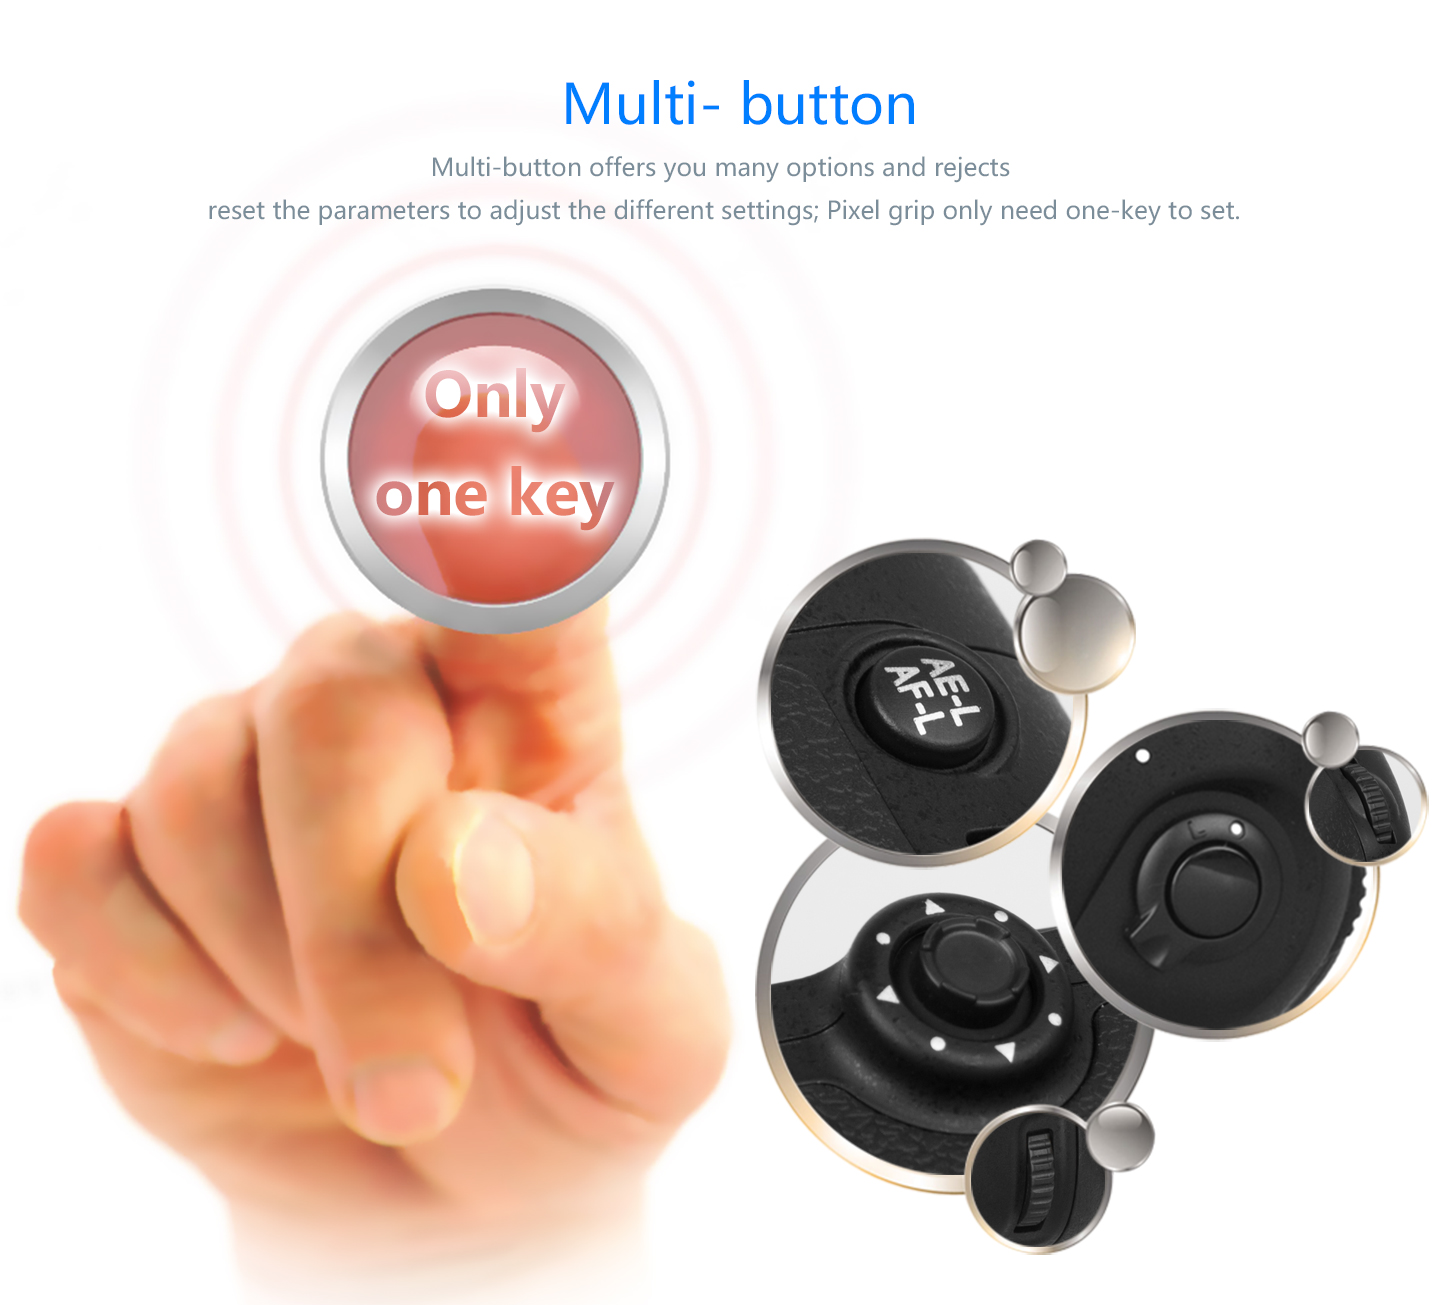 Multi-button